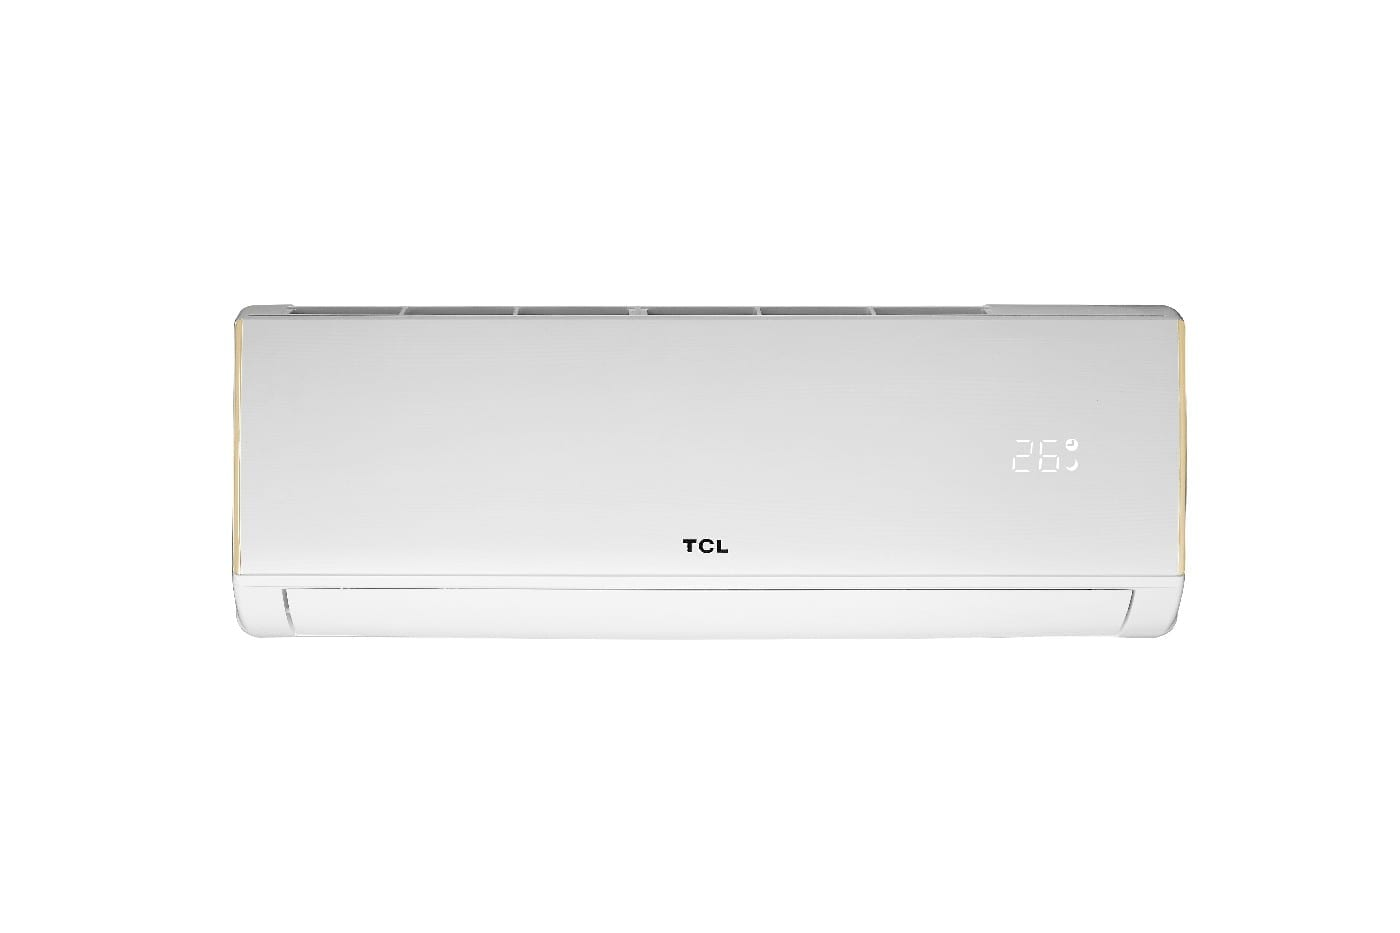 Tcl Split Ac 1.5 Ton Rotory Compressor, 18019 Btu,  Eer: 11.5, 5Star Ac, R410Gas 220-240V, 50Hz Made China